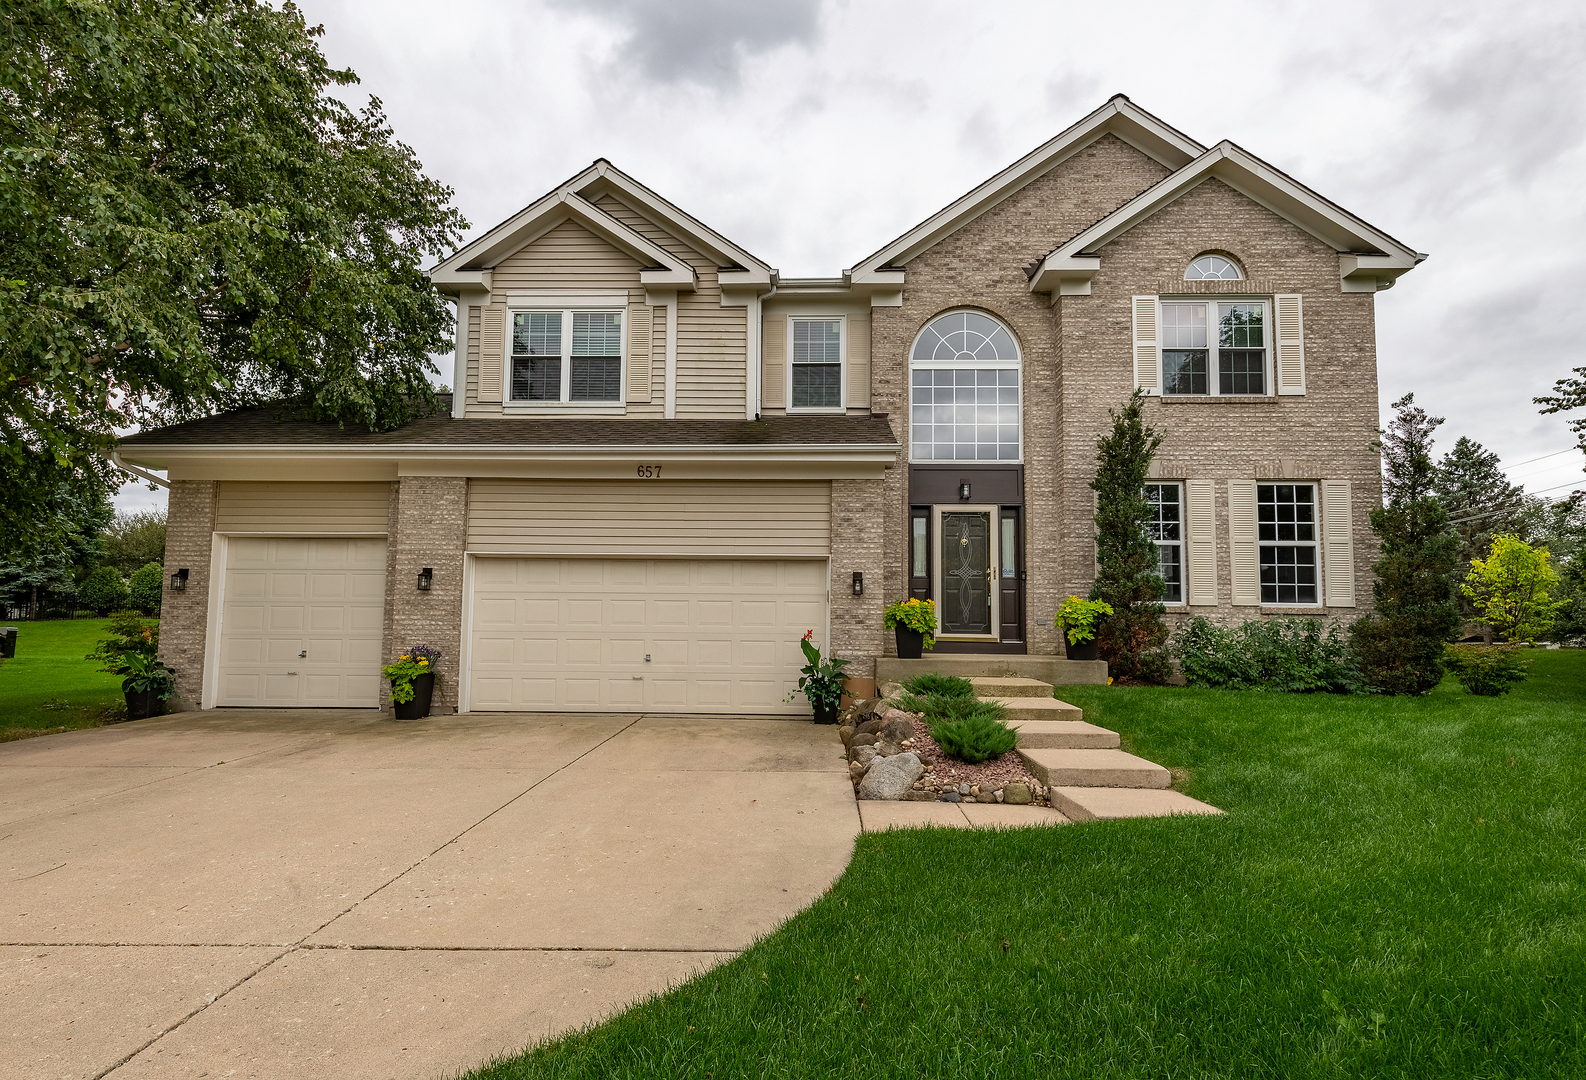 657 Providence Lane, Crystal Lake in Mc Henry County, IL 60012 Home for Sale